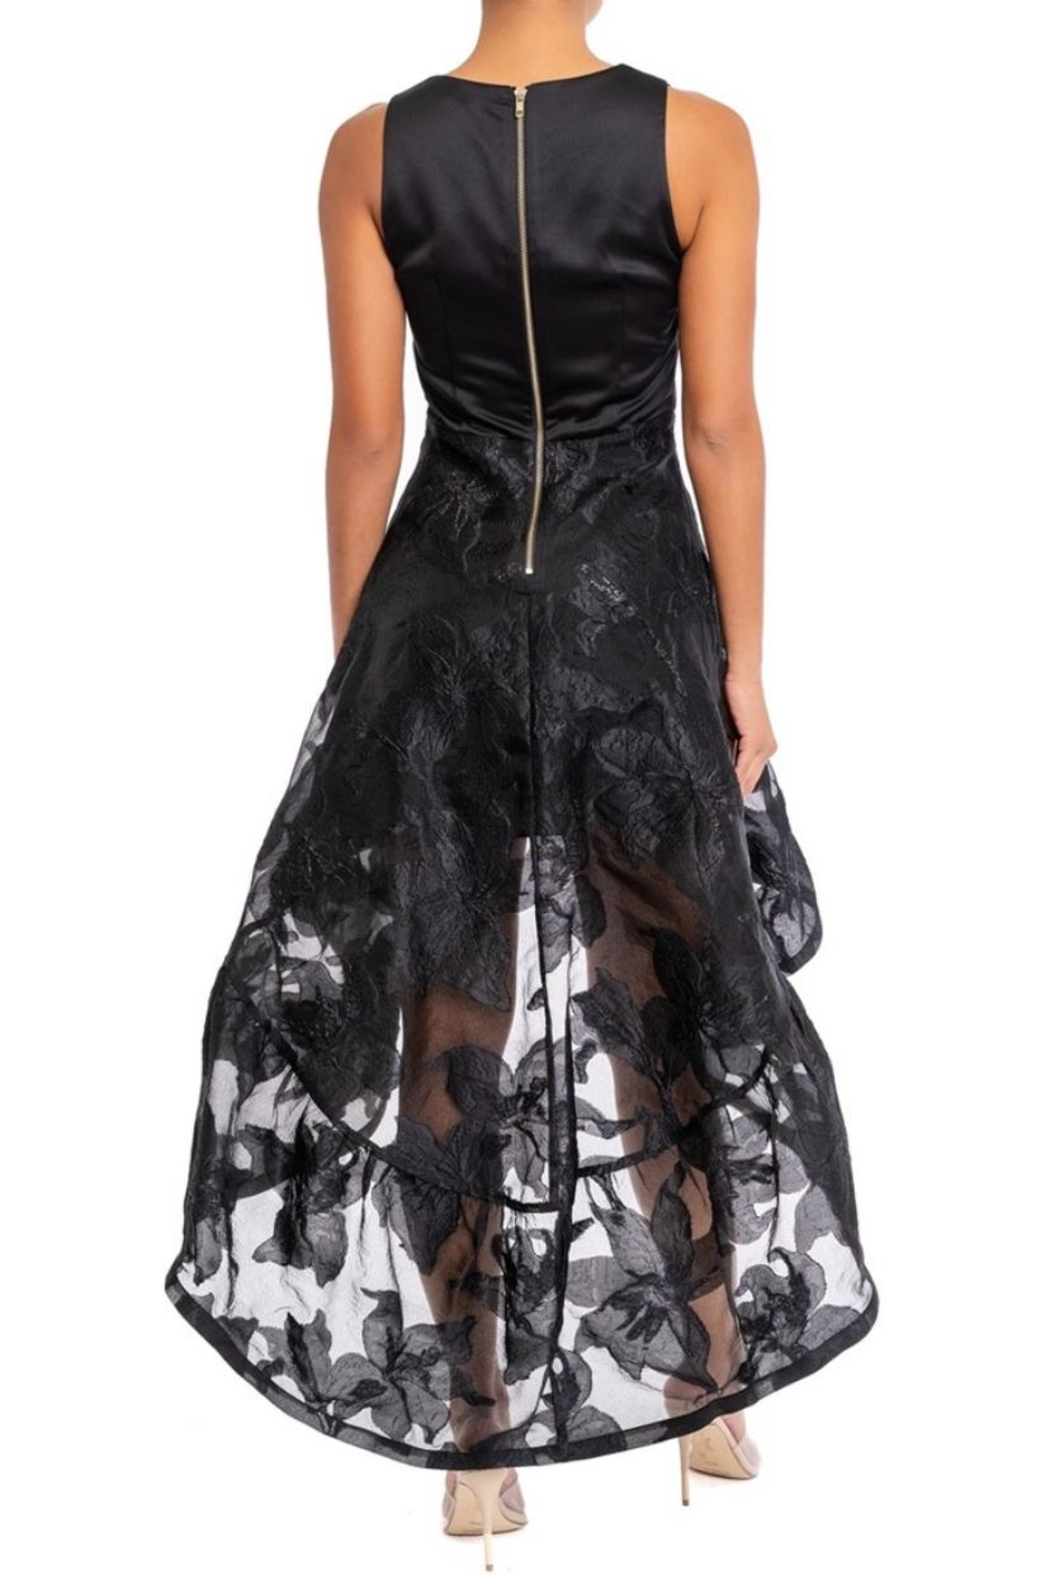 luxxel Organza-Floral Hi-Low Dress - Front Full Image